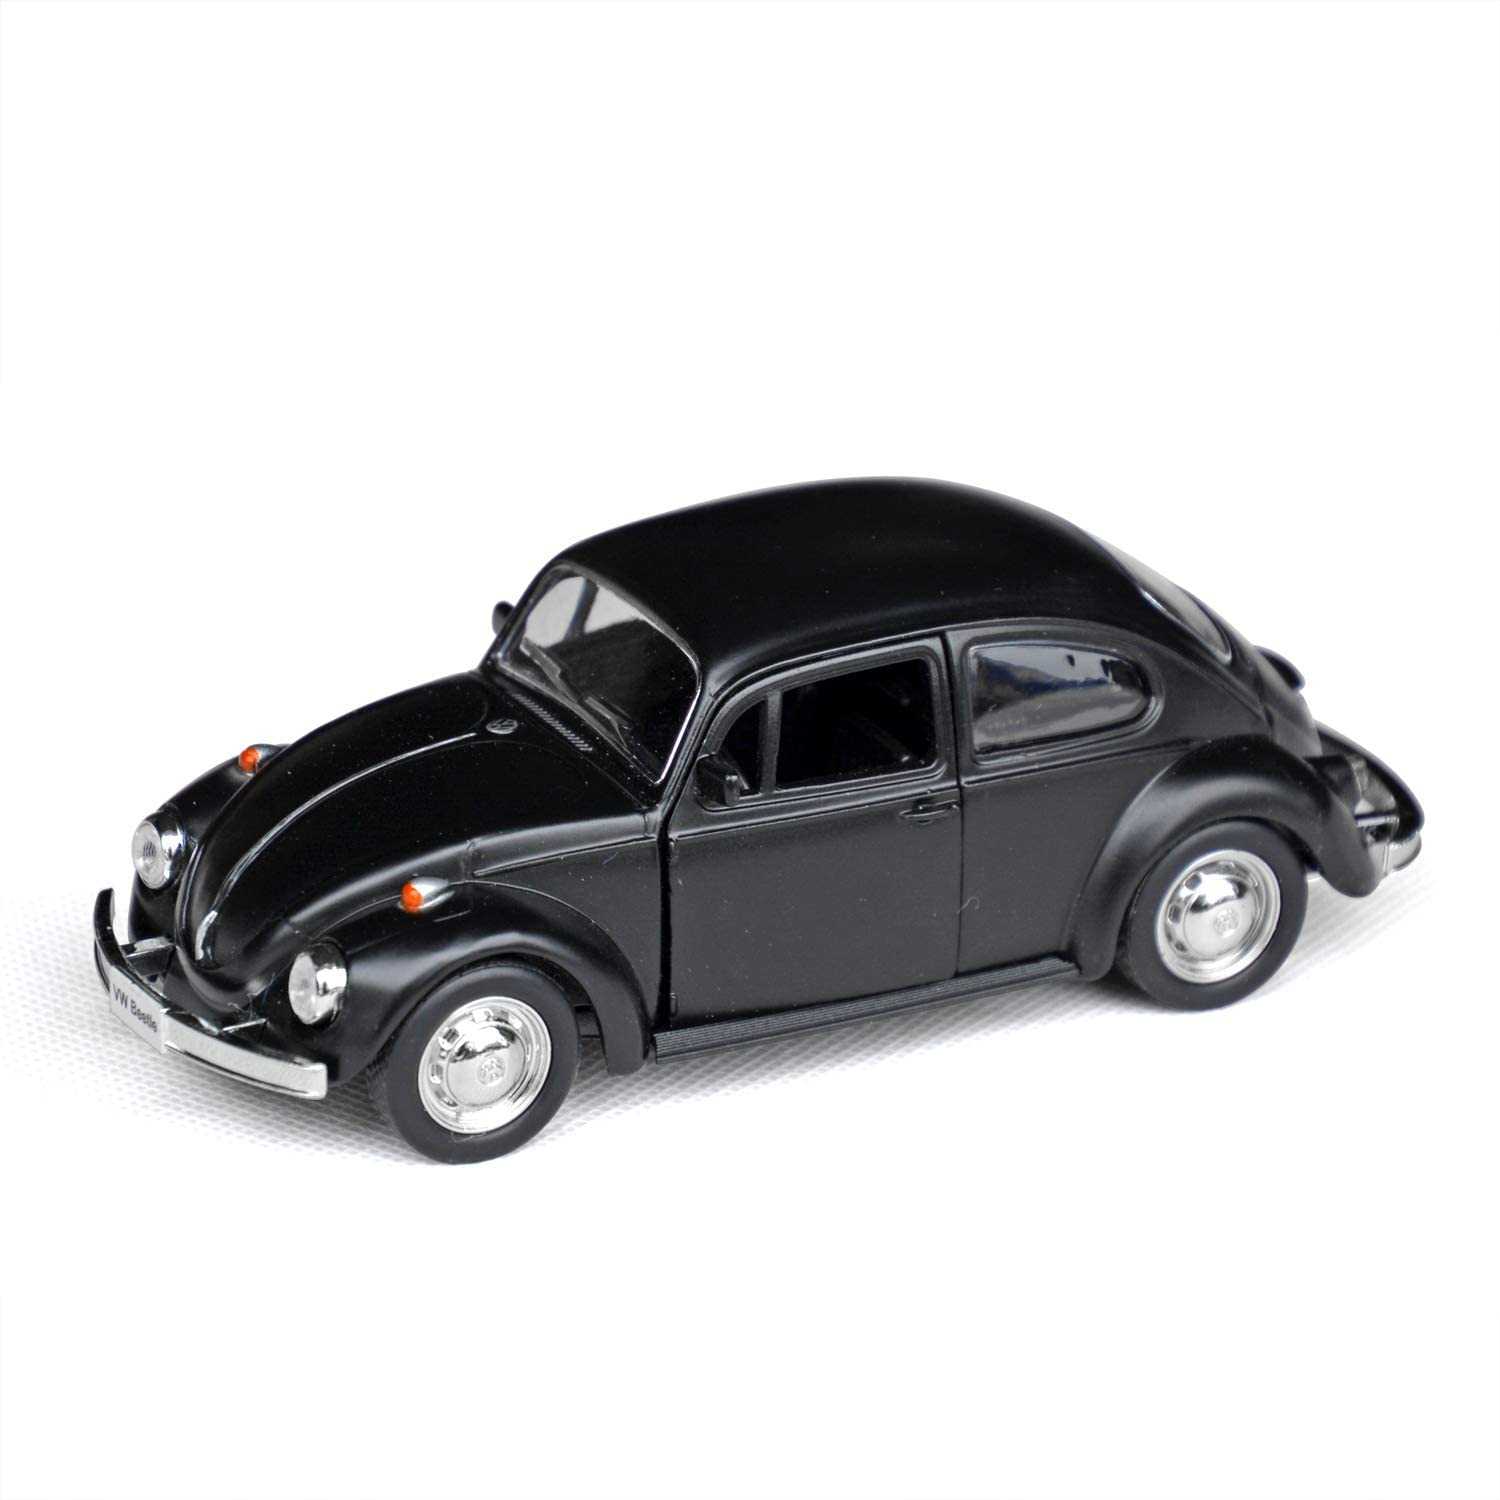 Tianmei 1:32 Scale Classic Car Alloy Die-Cast Car Model Collection Decoration Ornaments, Kids Play Vehicle Toys with Pull Back Action and Open Doors (JKC 1967 - Black)